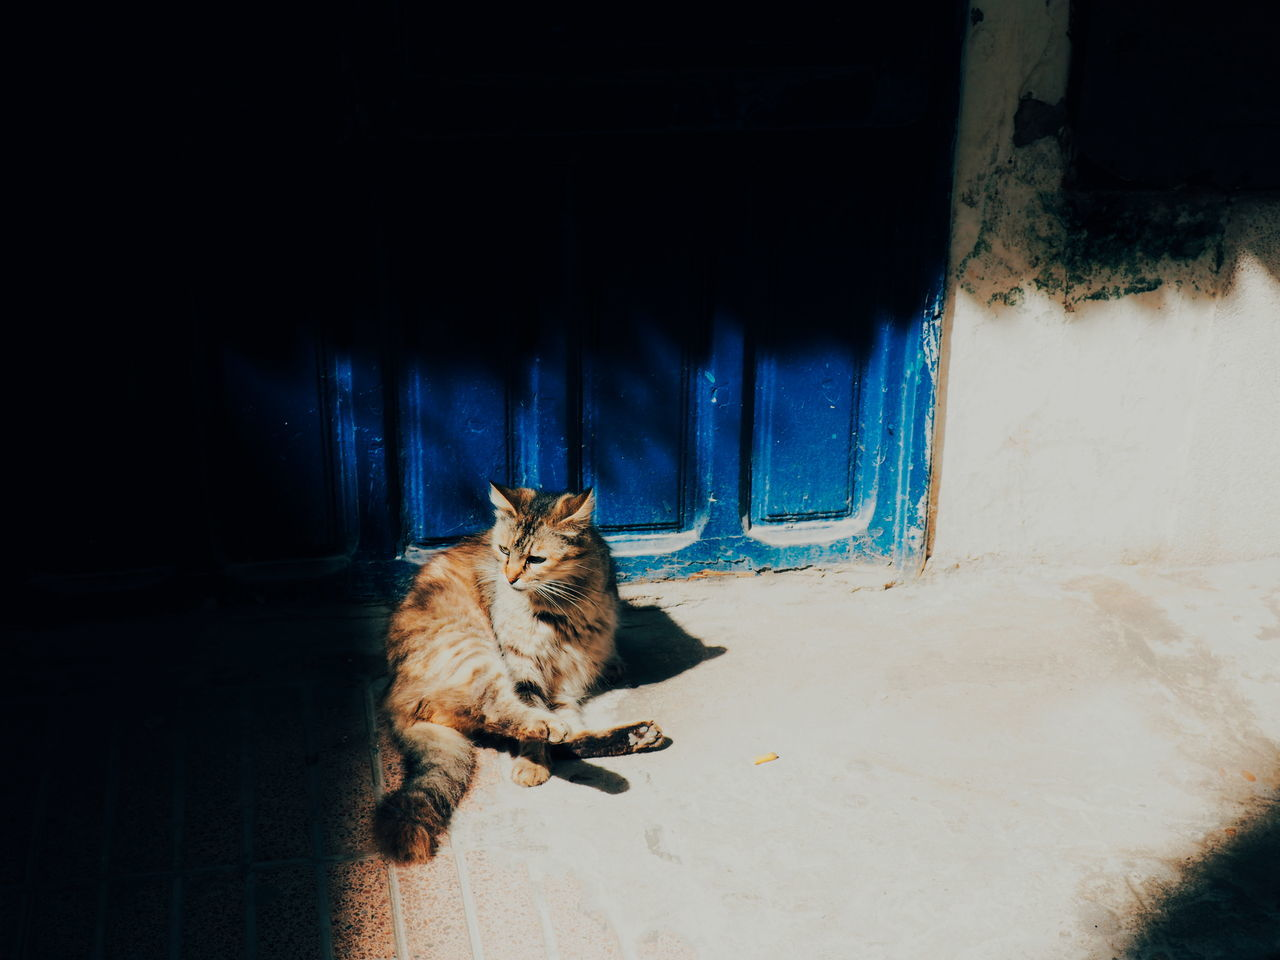 Animal Themes One Animal Mammal Domestic Animals Domestic Cat Pets Feline No People Snow Indoors  Leopard Day Cat Street Cat Light And Shadow Shadows & Lights Shadowplay Essaouira Morocco Morocco 🇲🇦